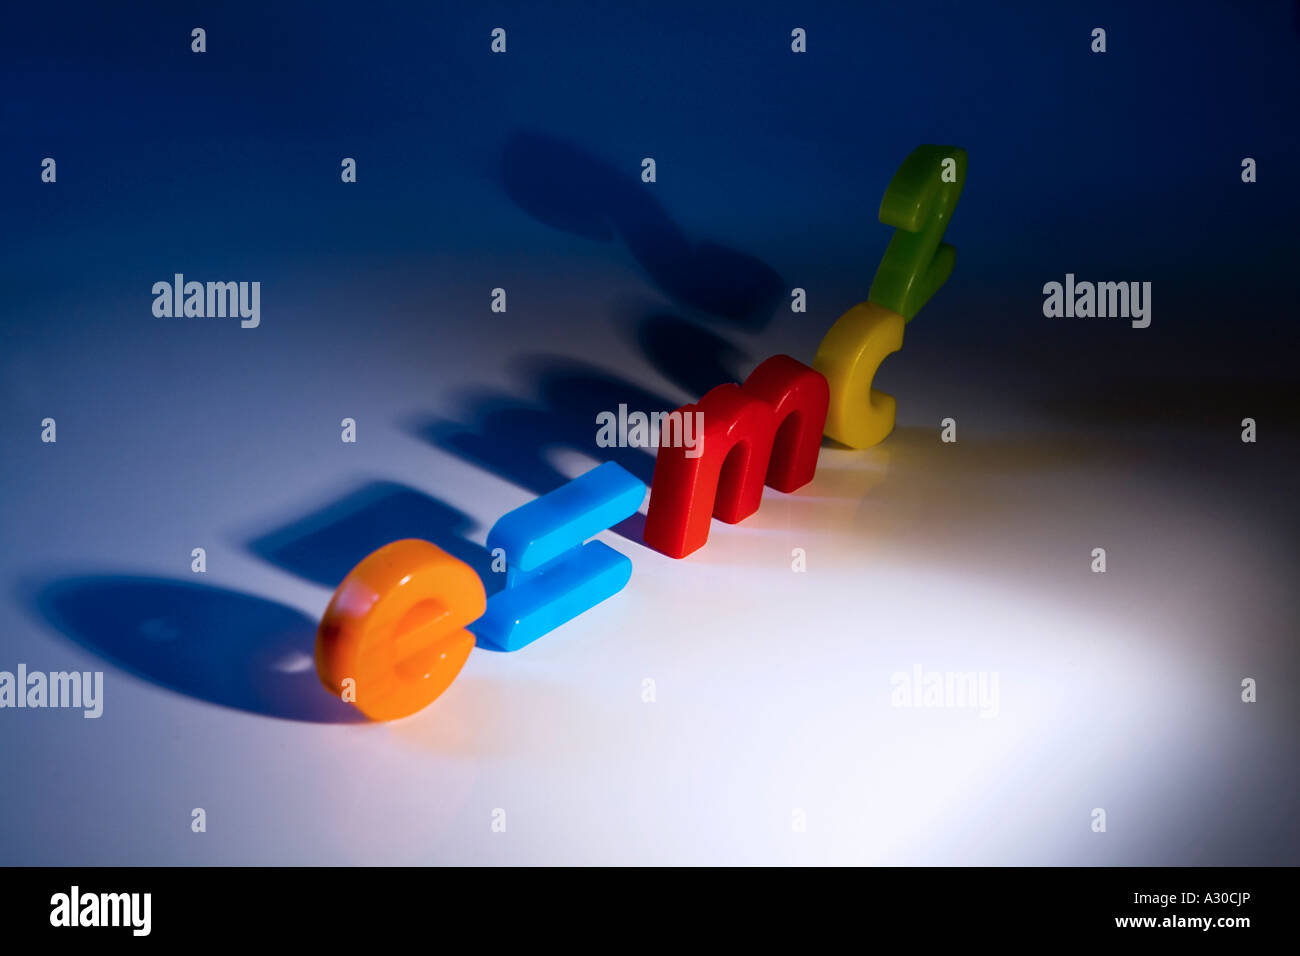 e mc2 theory of relativity formula spelt out with childrens fridge magnet letters and numbers - Stock Image